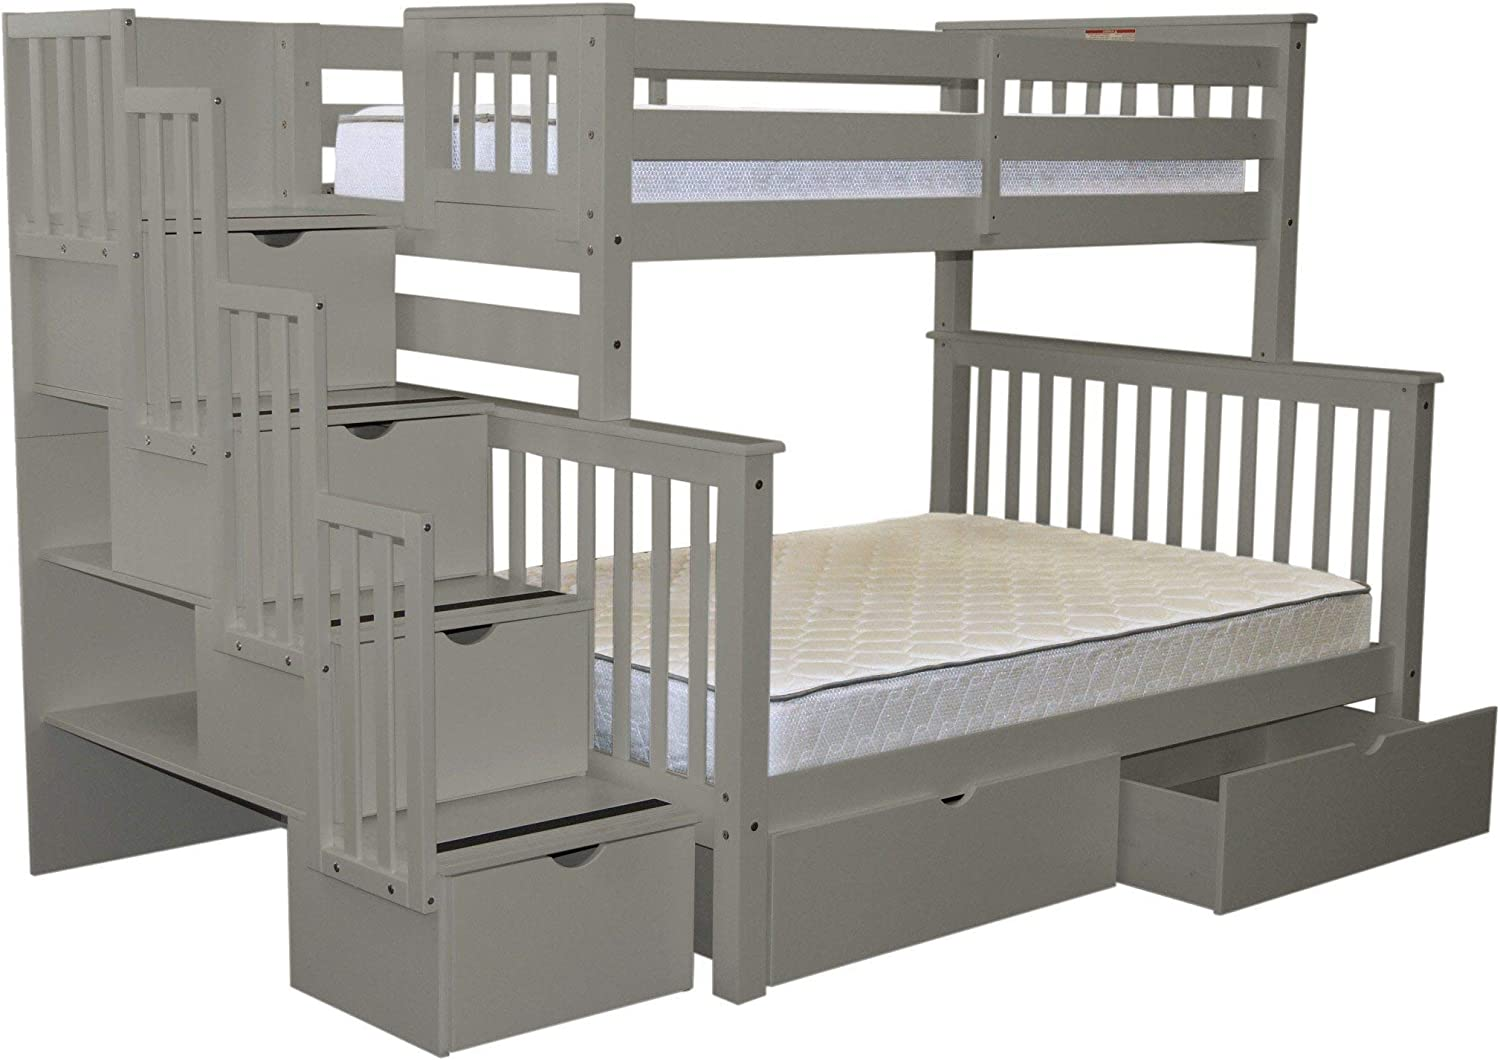 Buy Bedz King Stairway Bunk Beds Twin Over Full With 4 Drawers In The Steps And 2 Under Bed Drawers Gray Online In Vietnam B07nbqfc8v